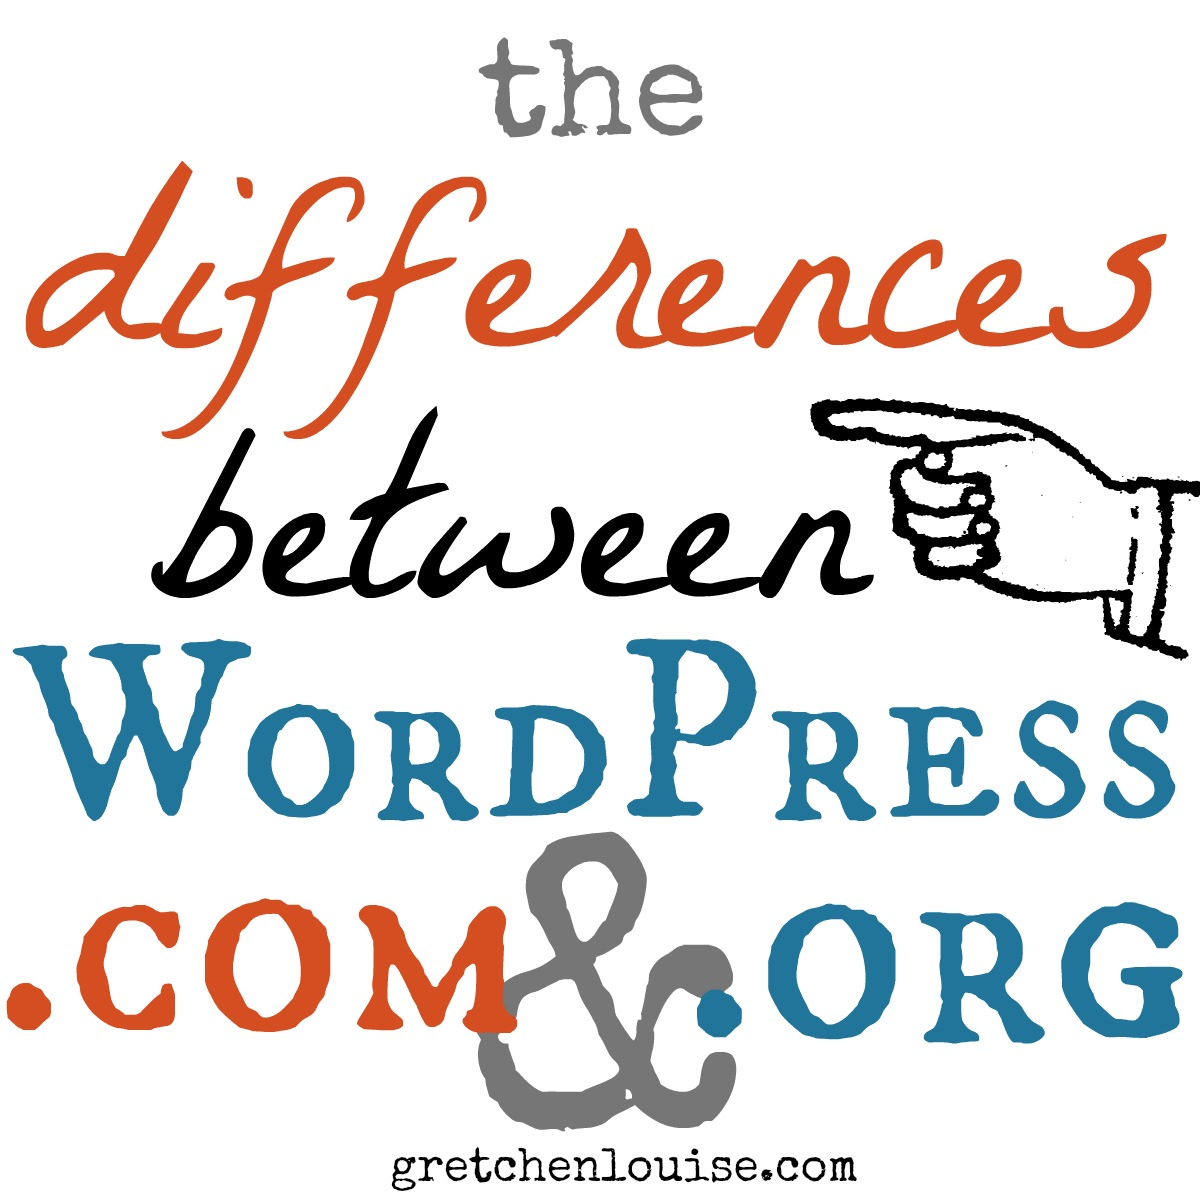 The Differences Between WordPress.com and WordPress.org